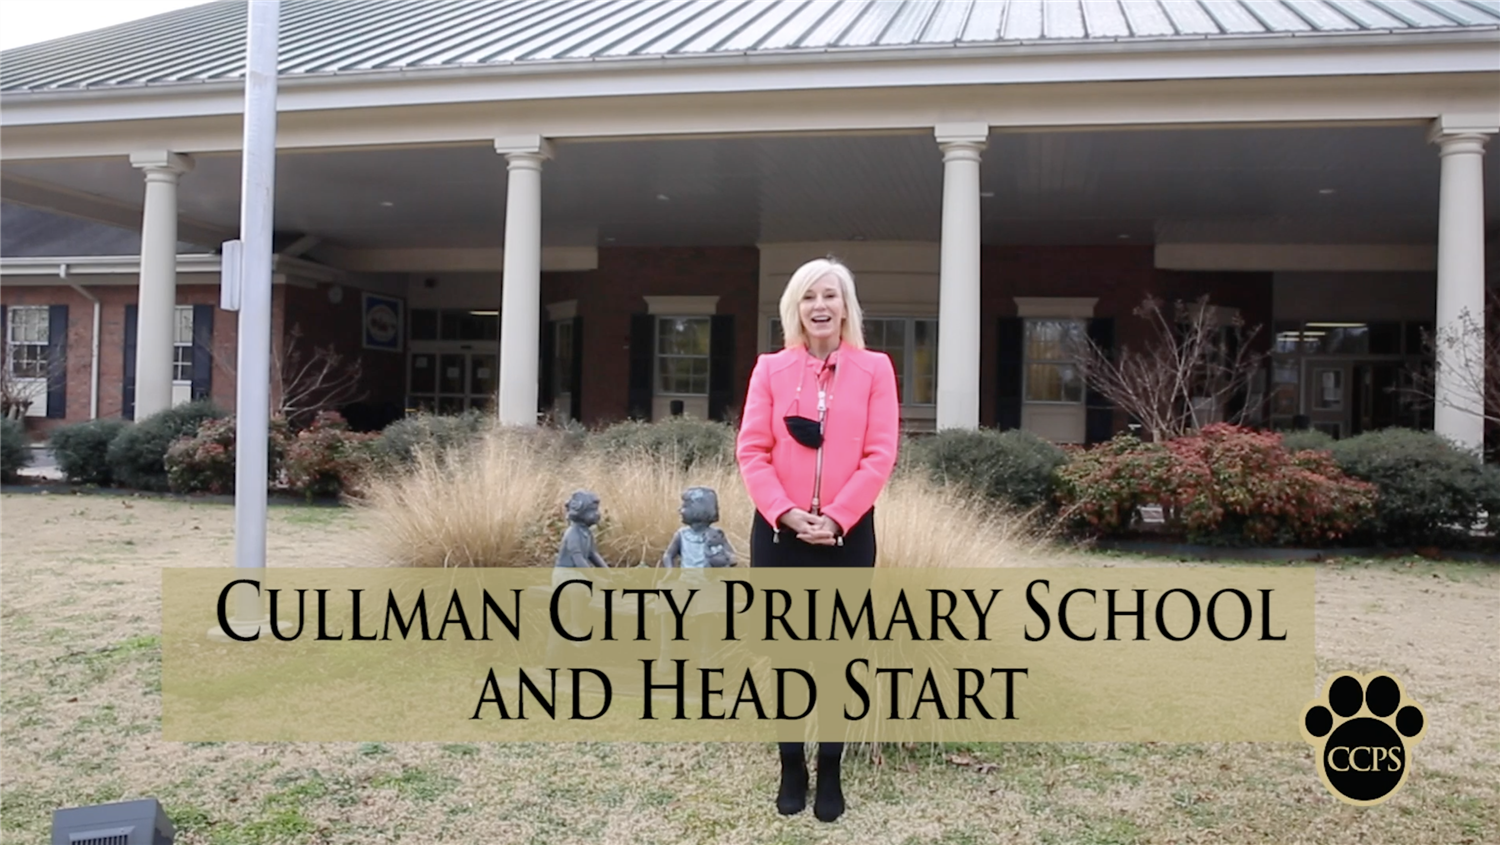 click here to visit a video about Cullman City Primary School and Head Start